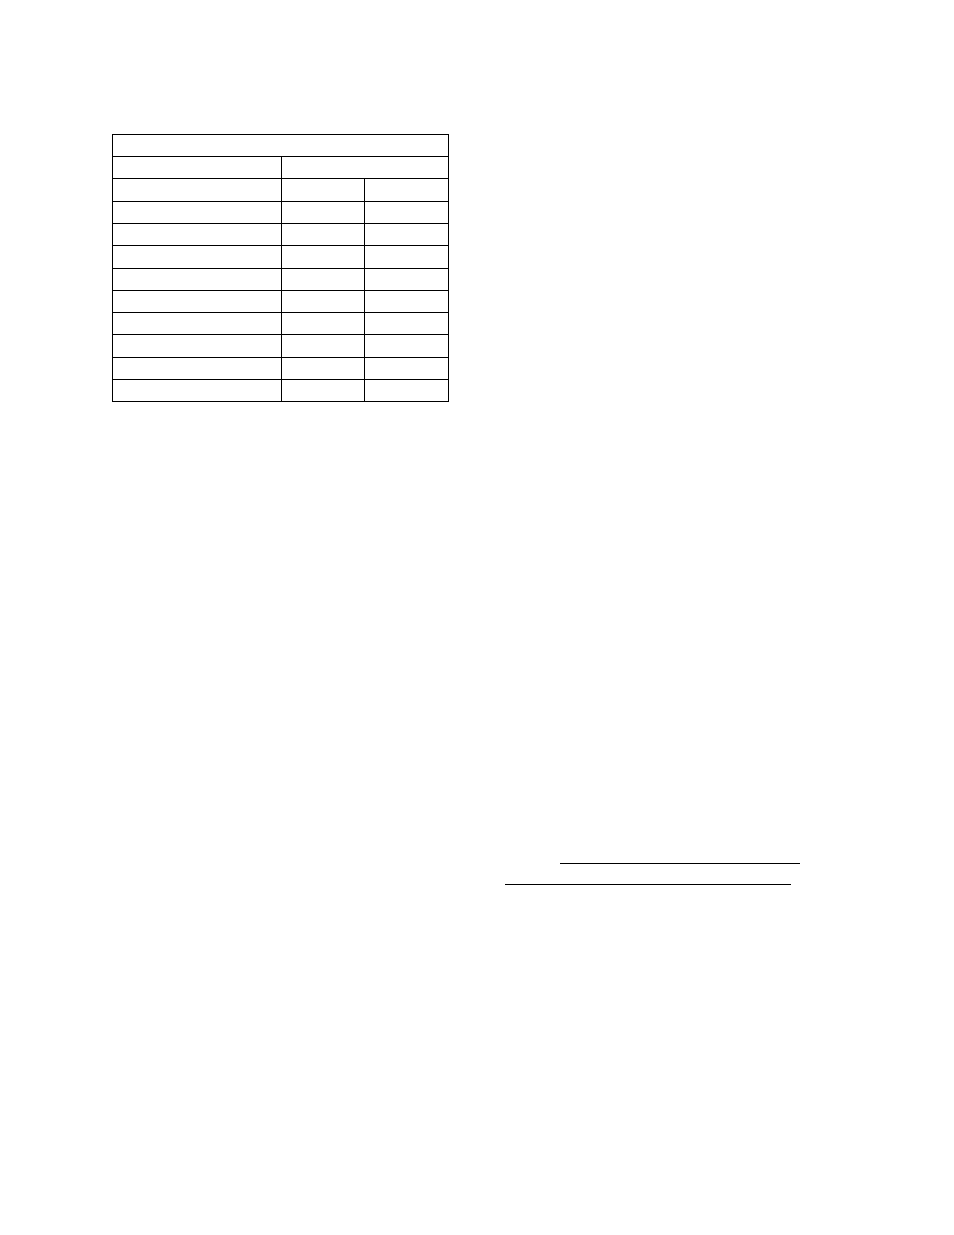 hight resolution of heating coils chilled water coil electric preheat aaon v3 e user manual page 26 72